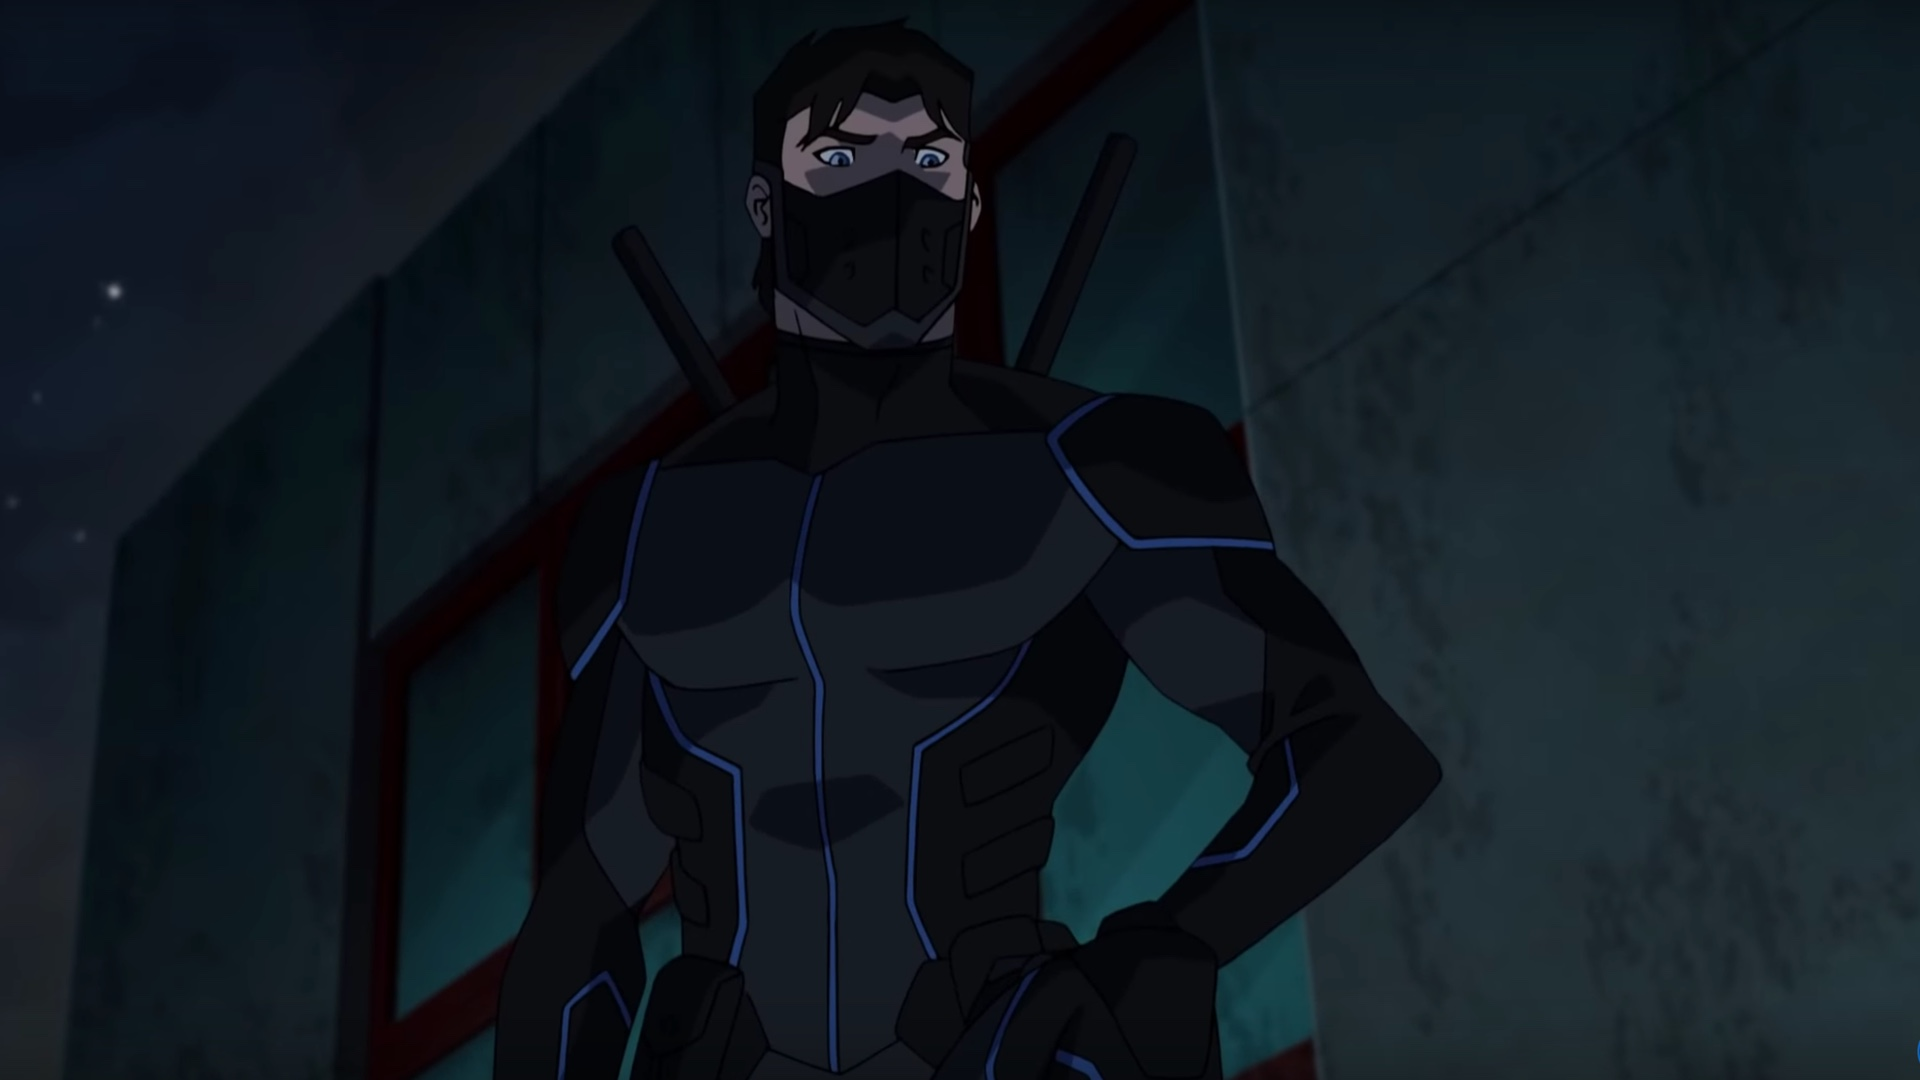 new-clip-from-young-justice-outsiders-features-nightwing-in-action-social.jpg